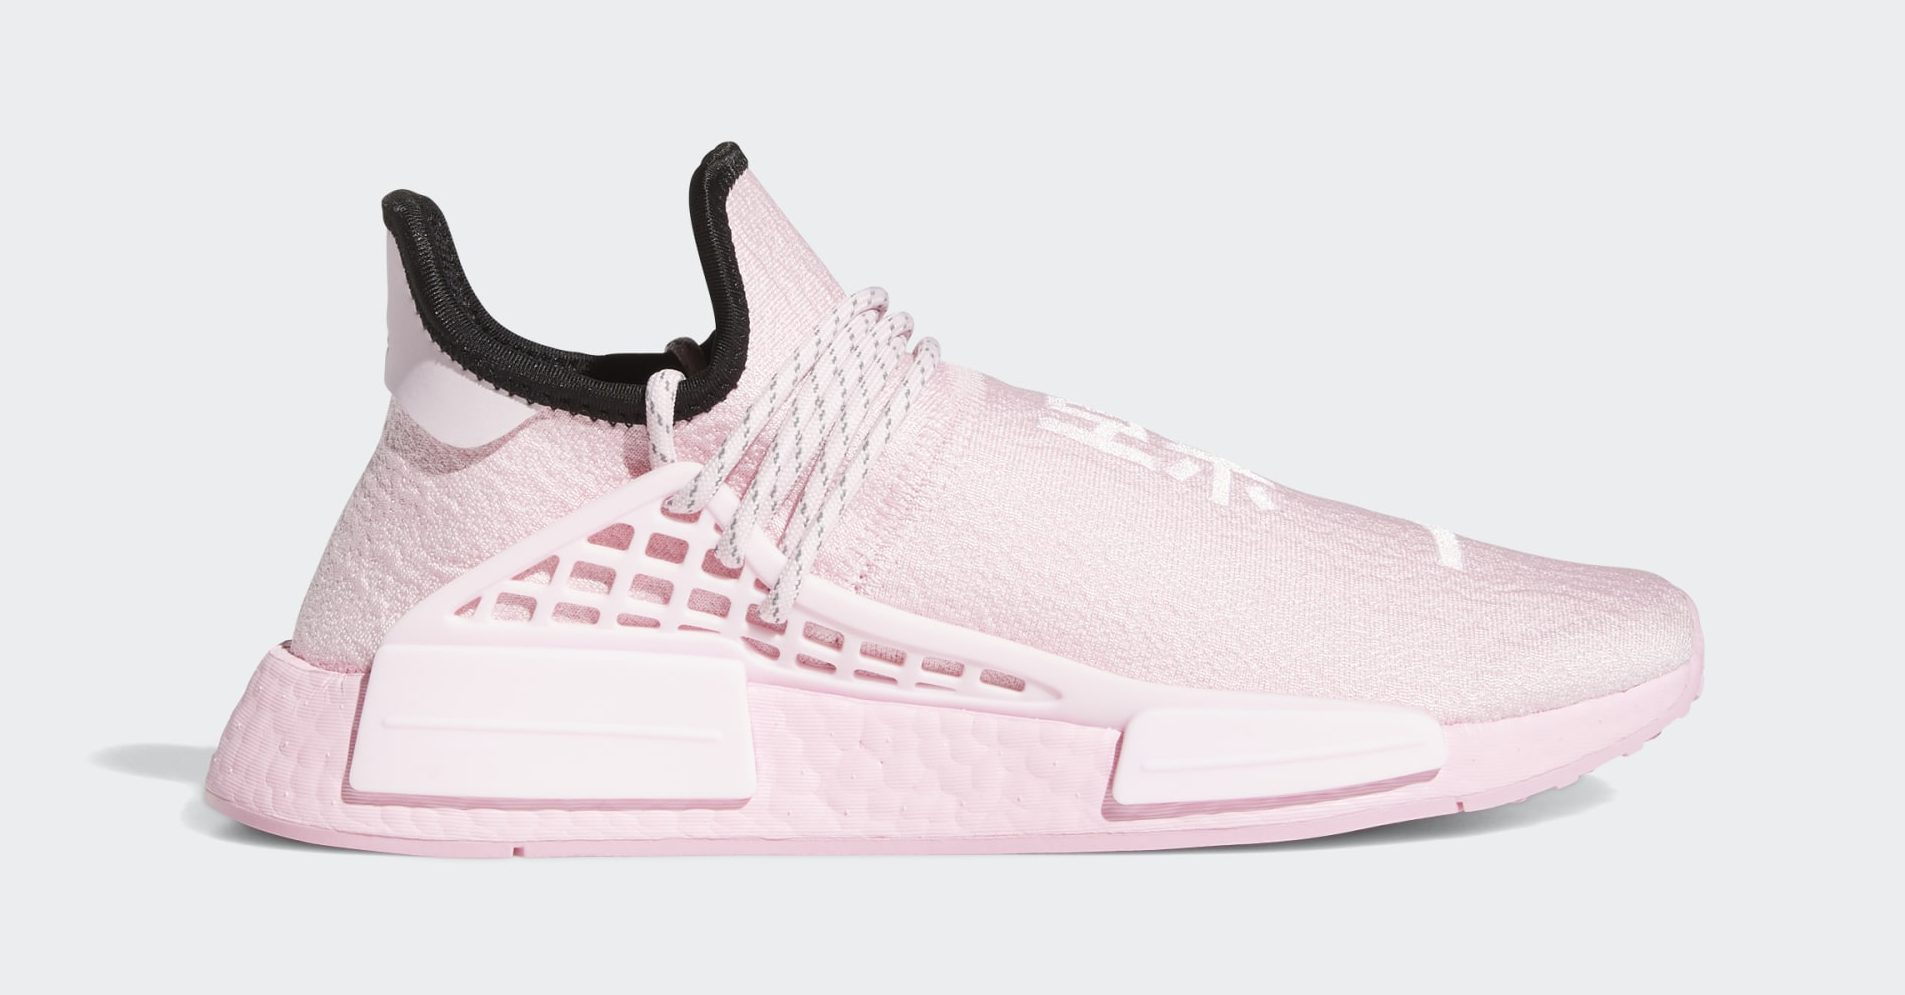 Pharrell Adidas NMD Hu 'True Pink' Release Info: How to Buy a Pair ...